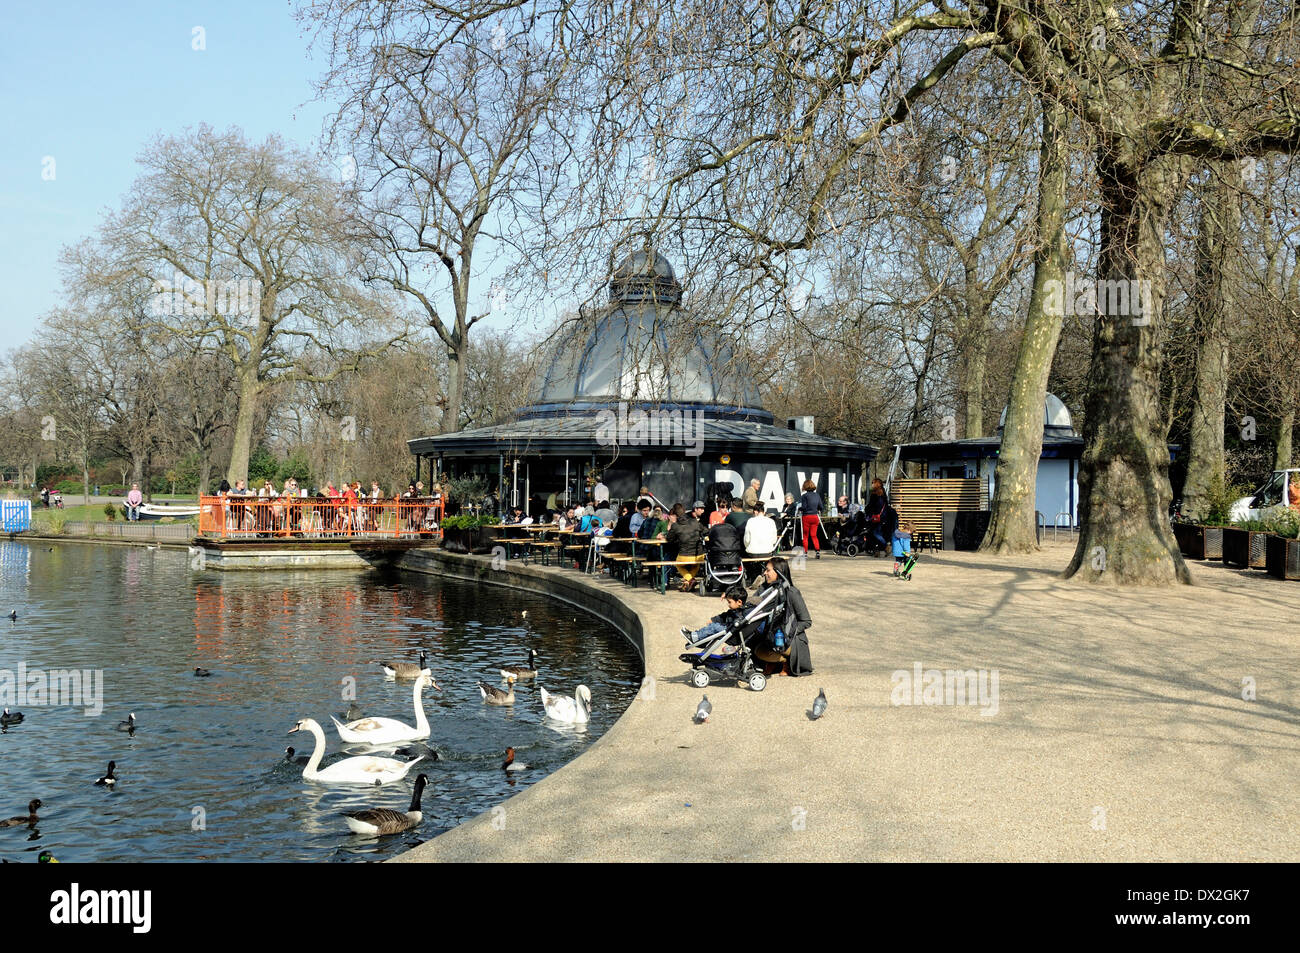 Pavilion Cafe, Victoria Park with people eating outside, London Borough of Tower Hamlets, England UK - Stock Image